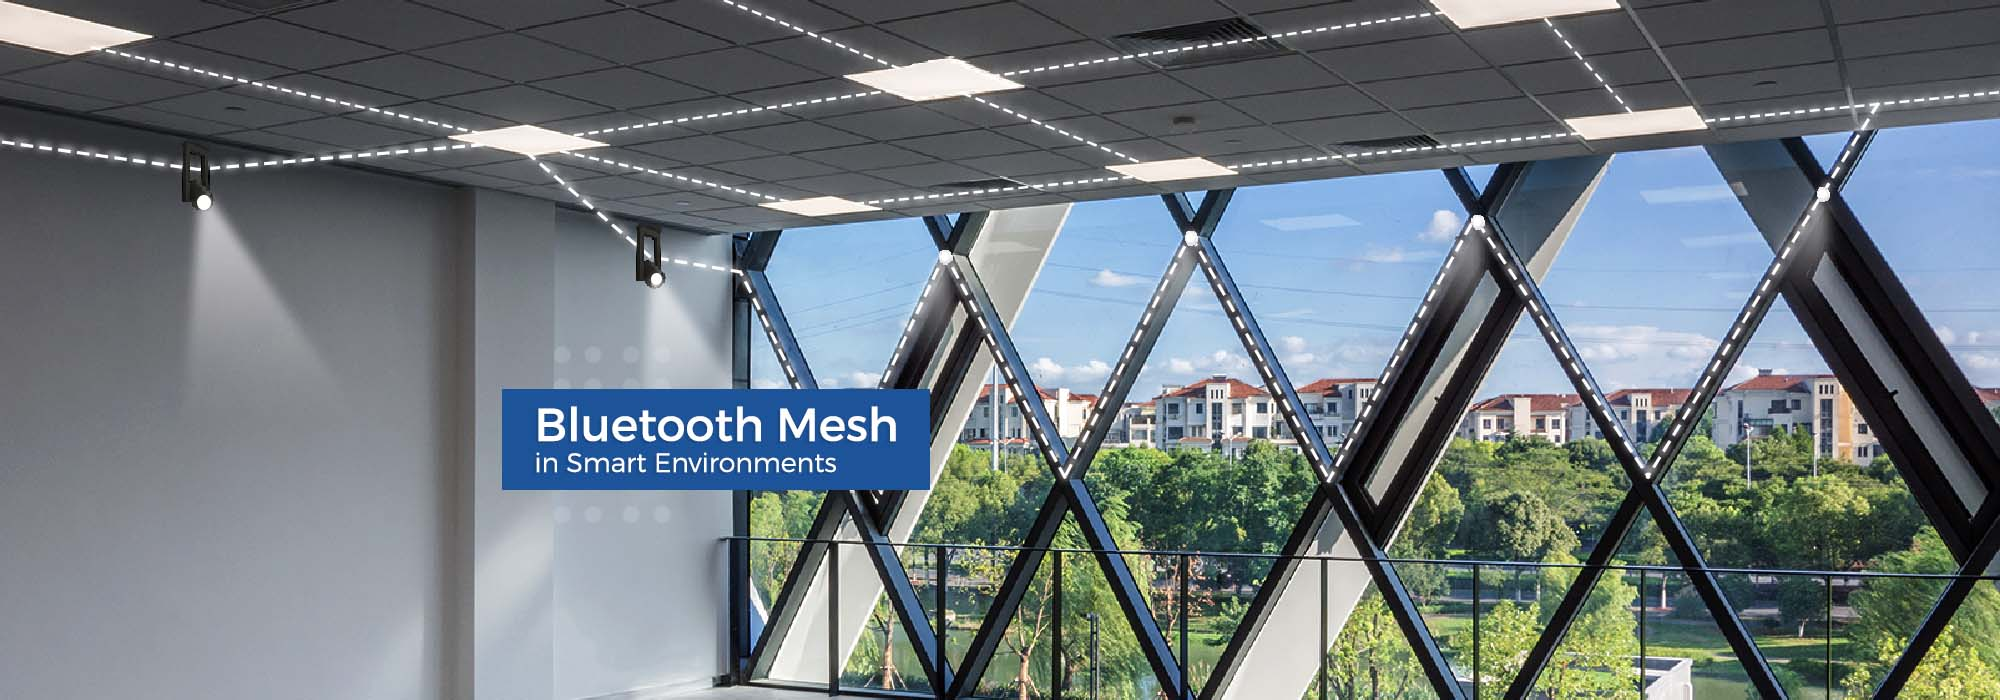 Bluetooth mesh is advancing smart building technology